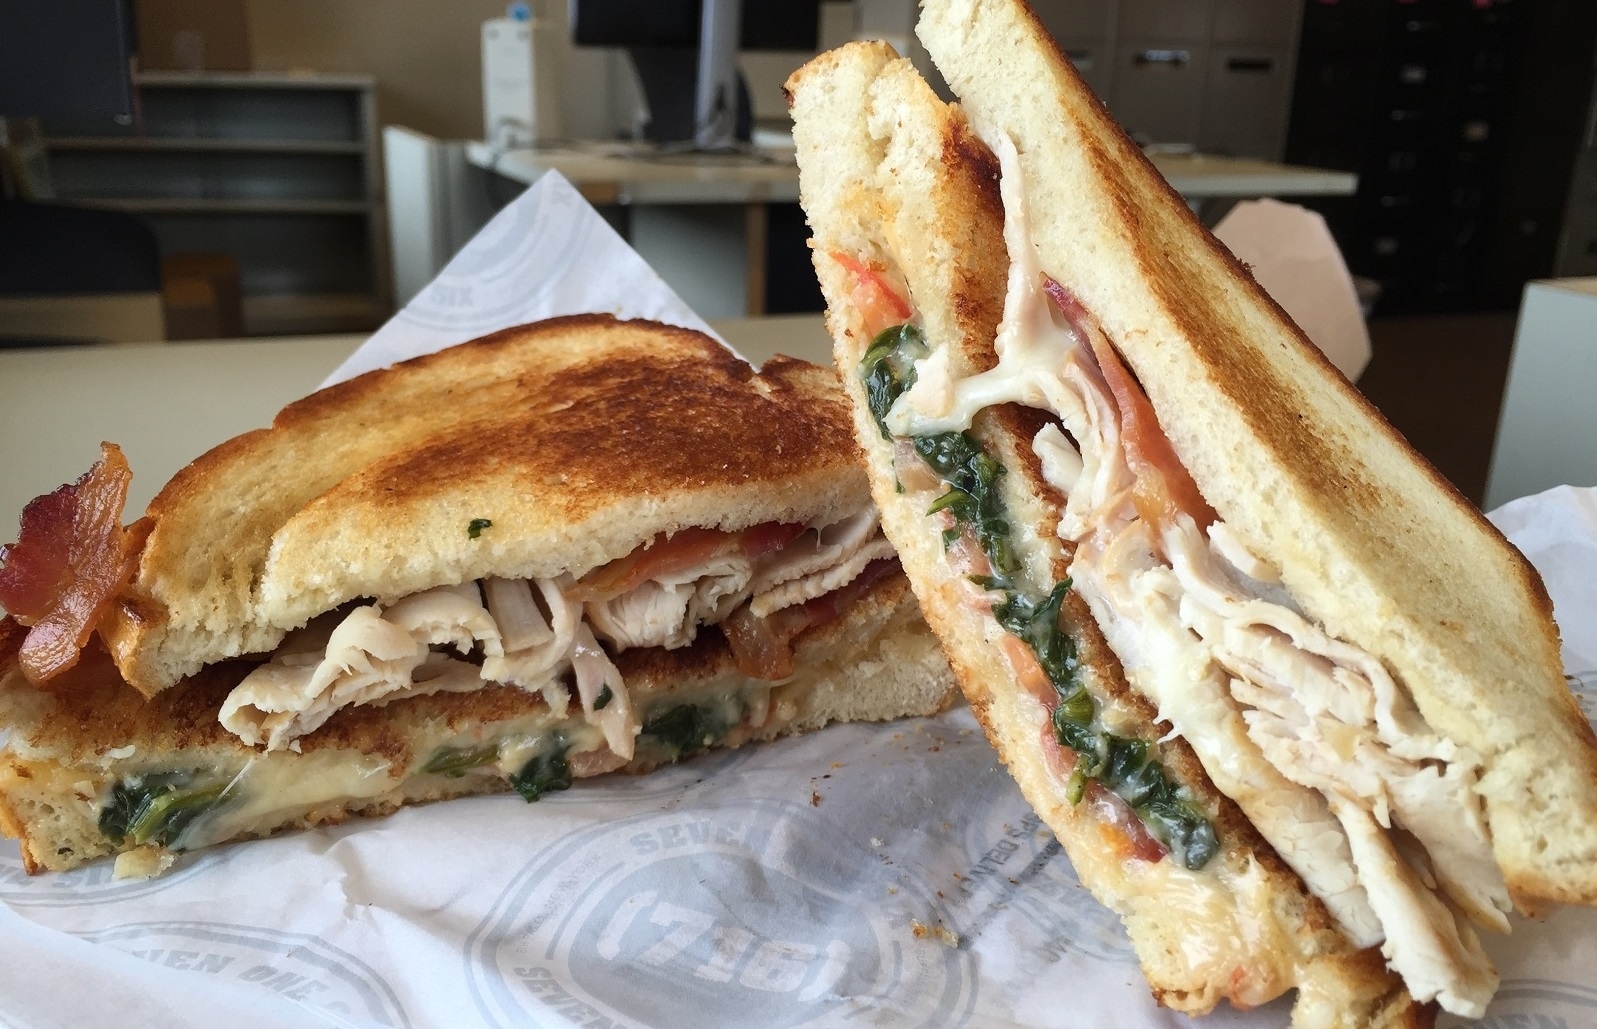 The Club House double melt, one of the truck's best-selling options. (Ben Tsujimoto/Buffalo News file photo)